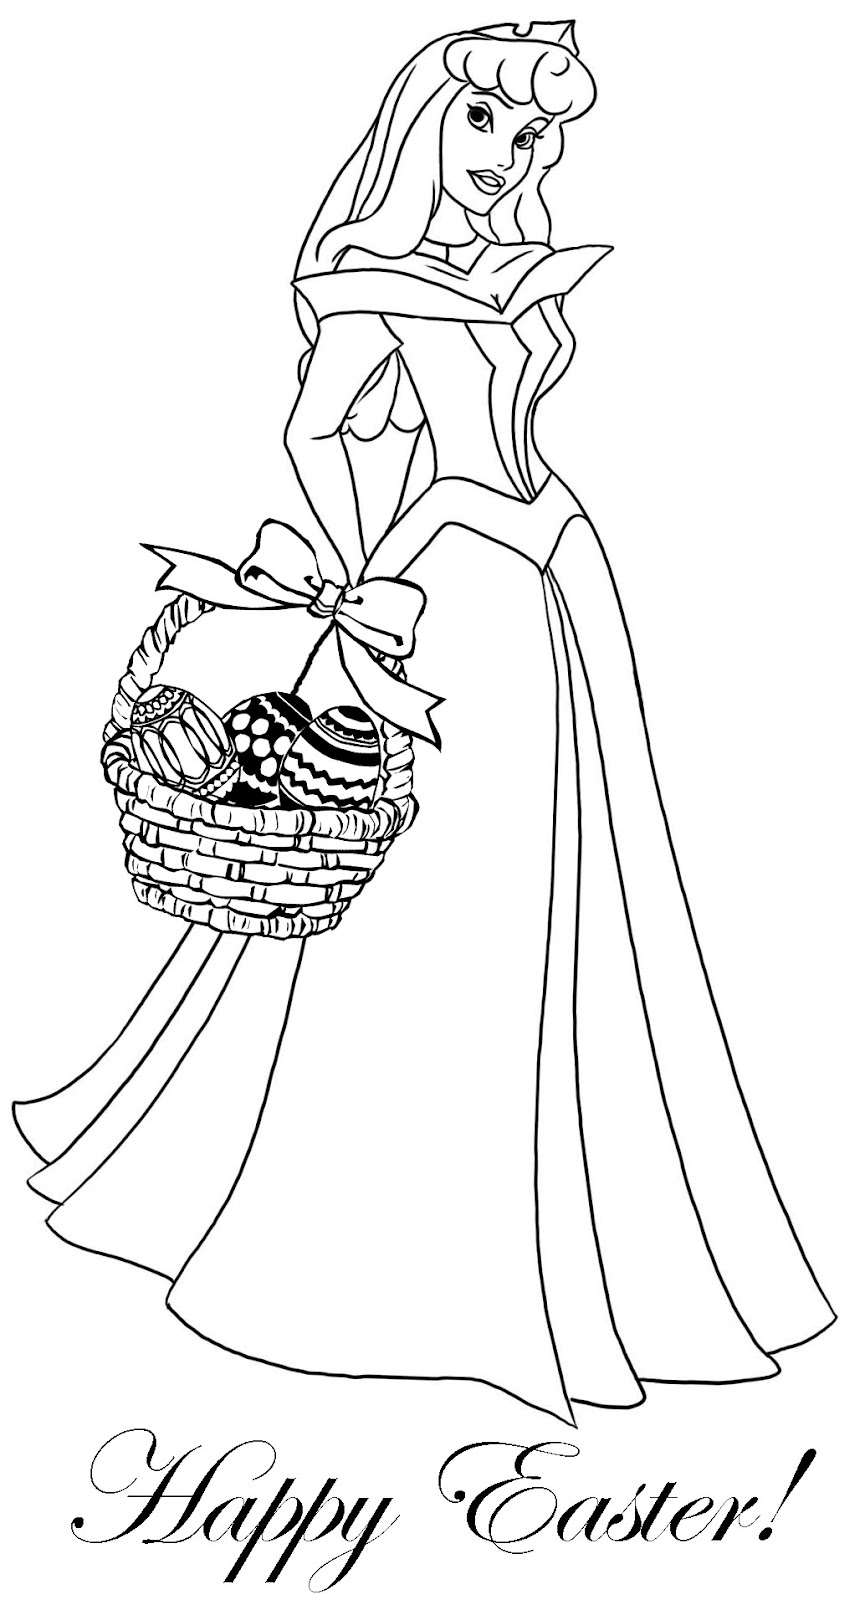 Coloring Book Pages Princess : Princess coloring pages